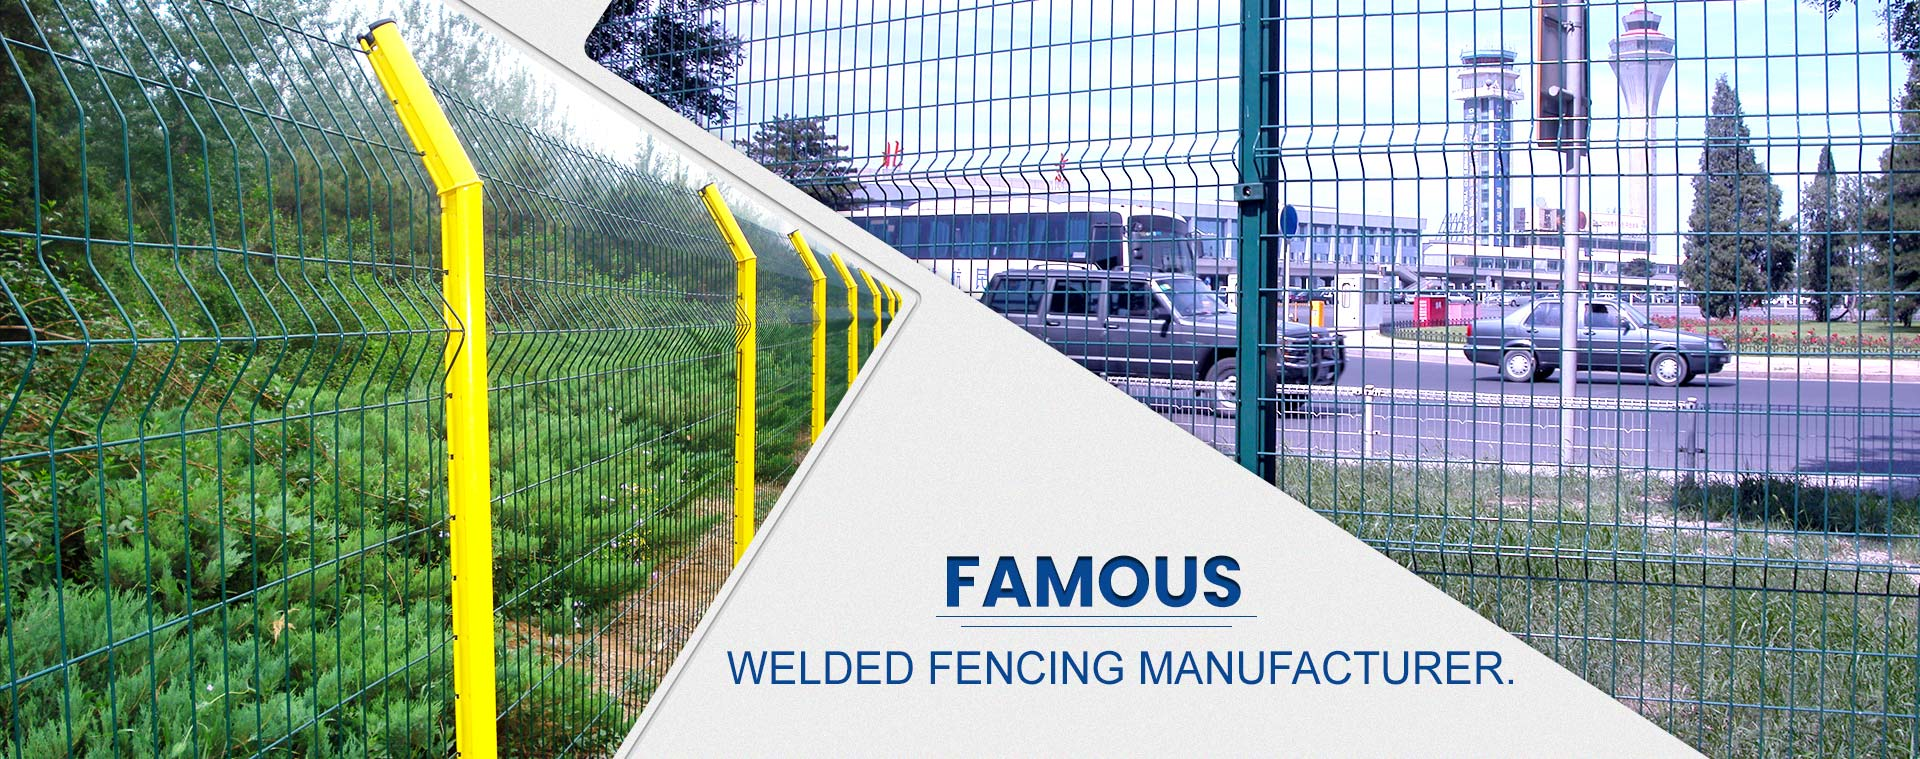 Famous Welded Fencing Manufacturer.